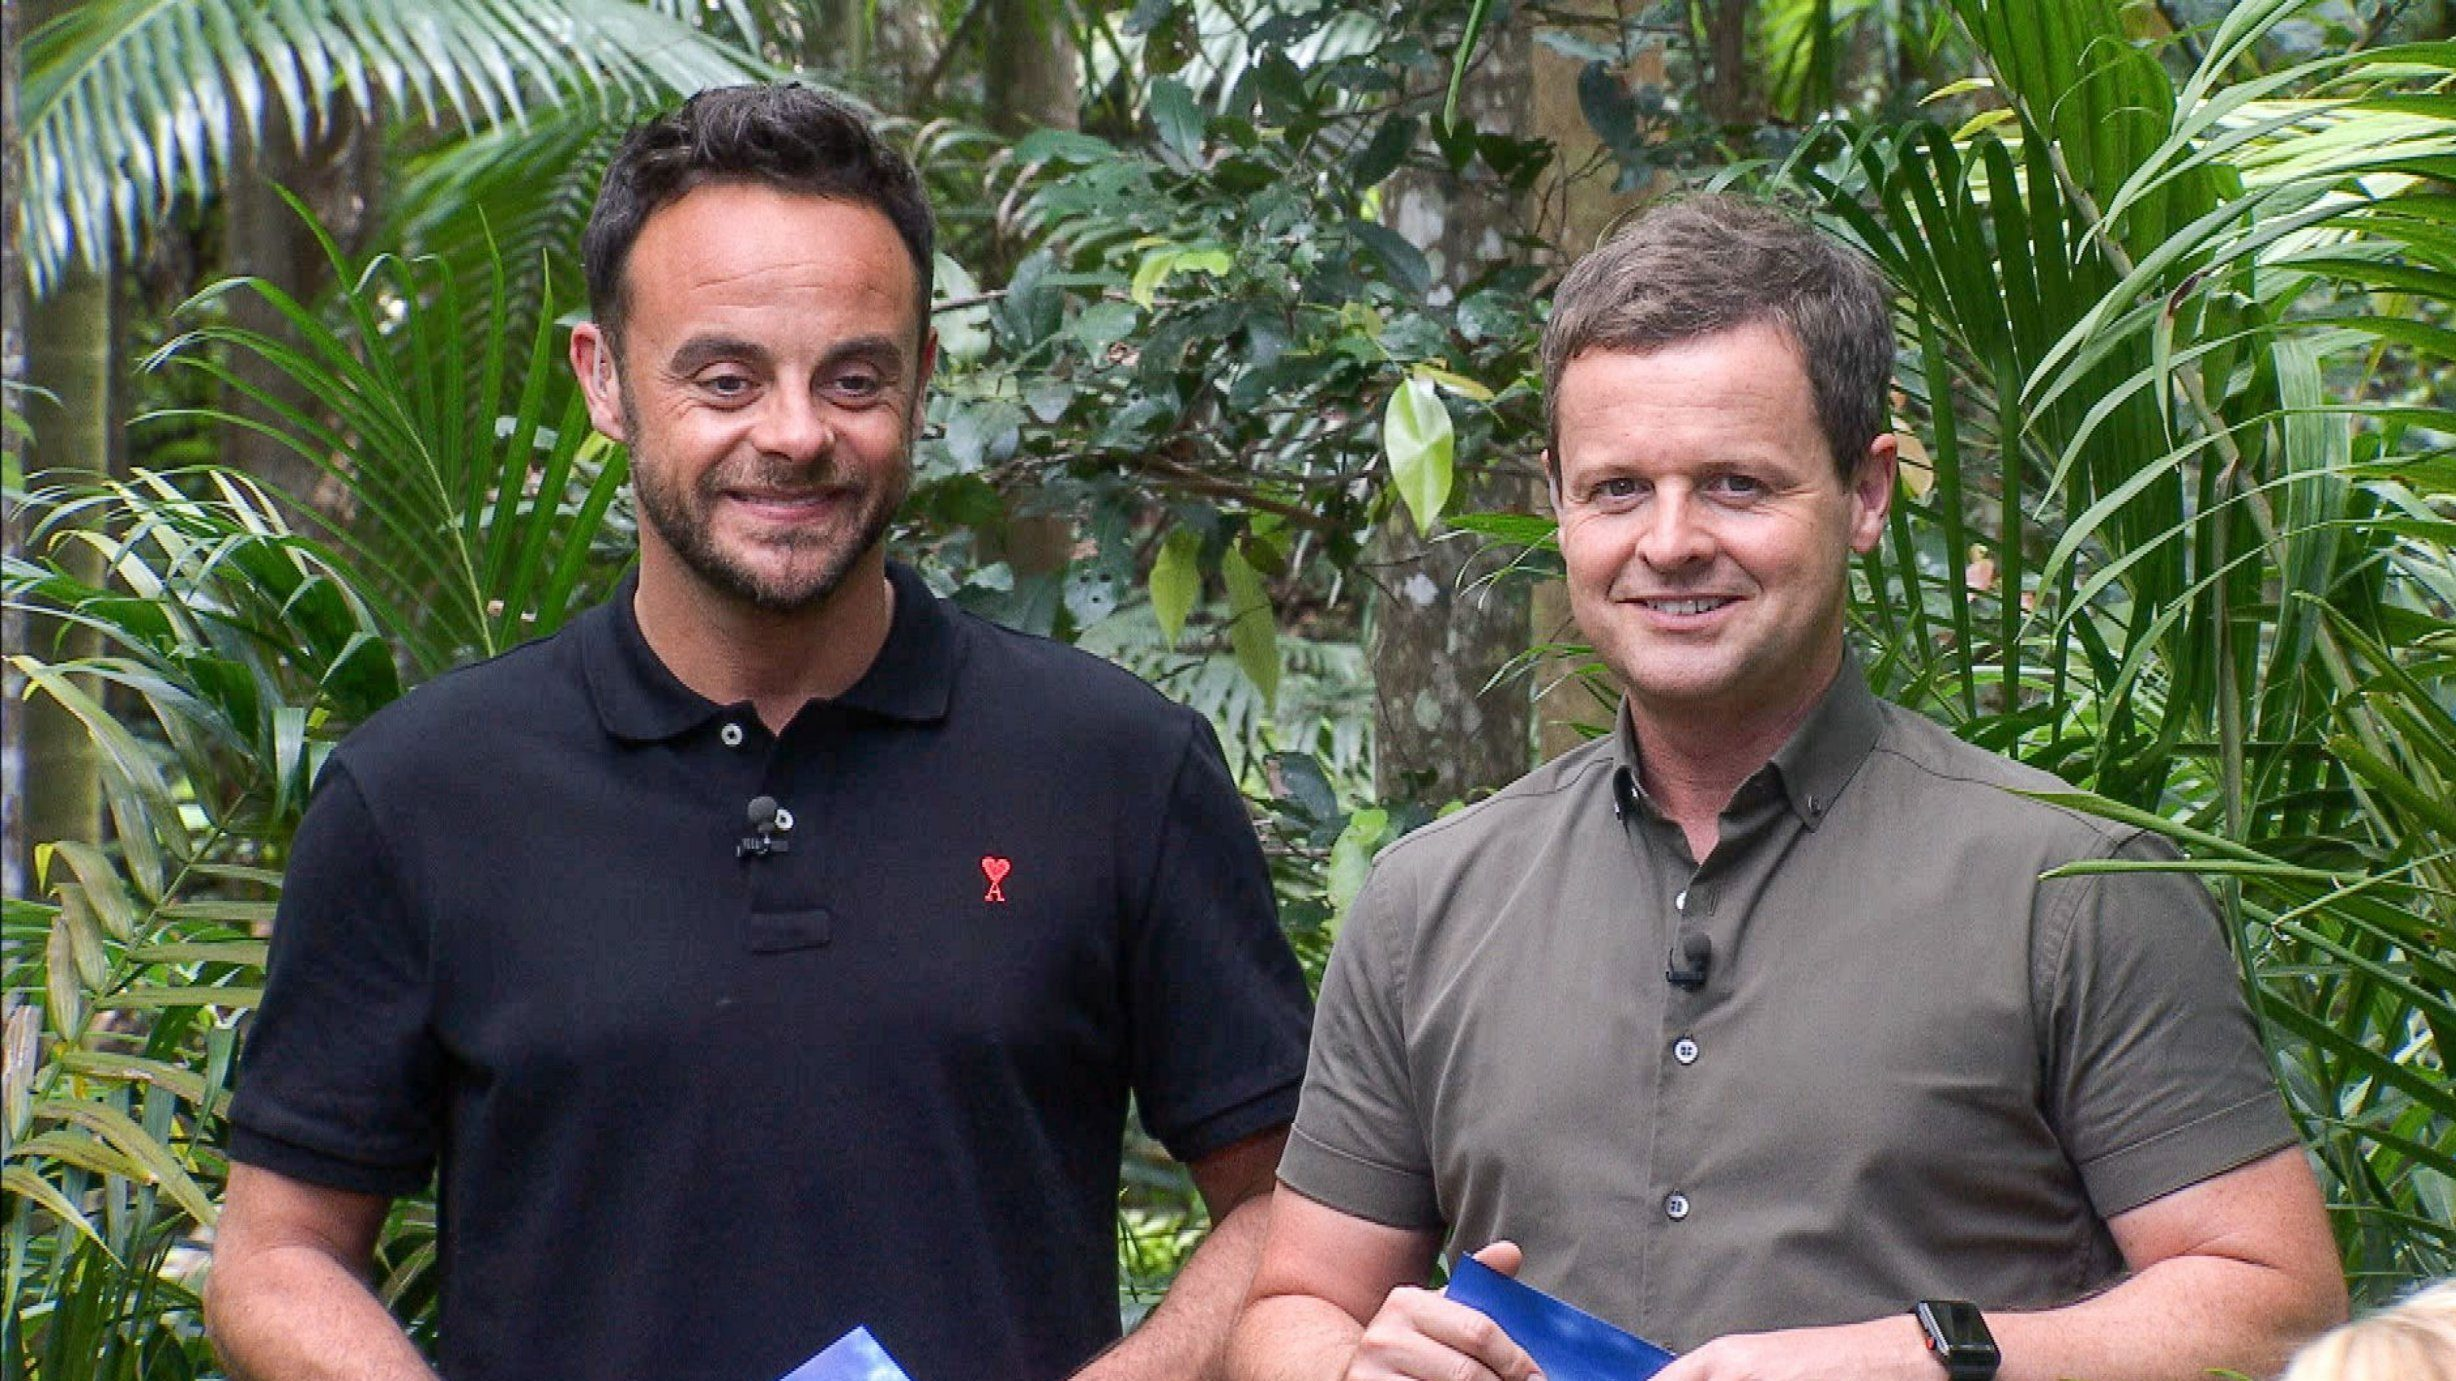 Declan Donnelly says Ant McPartlin 'will be back stronger next year' as he prepares for I'm A Celeb